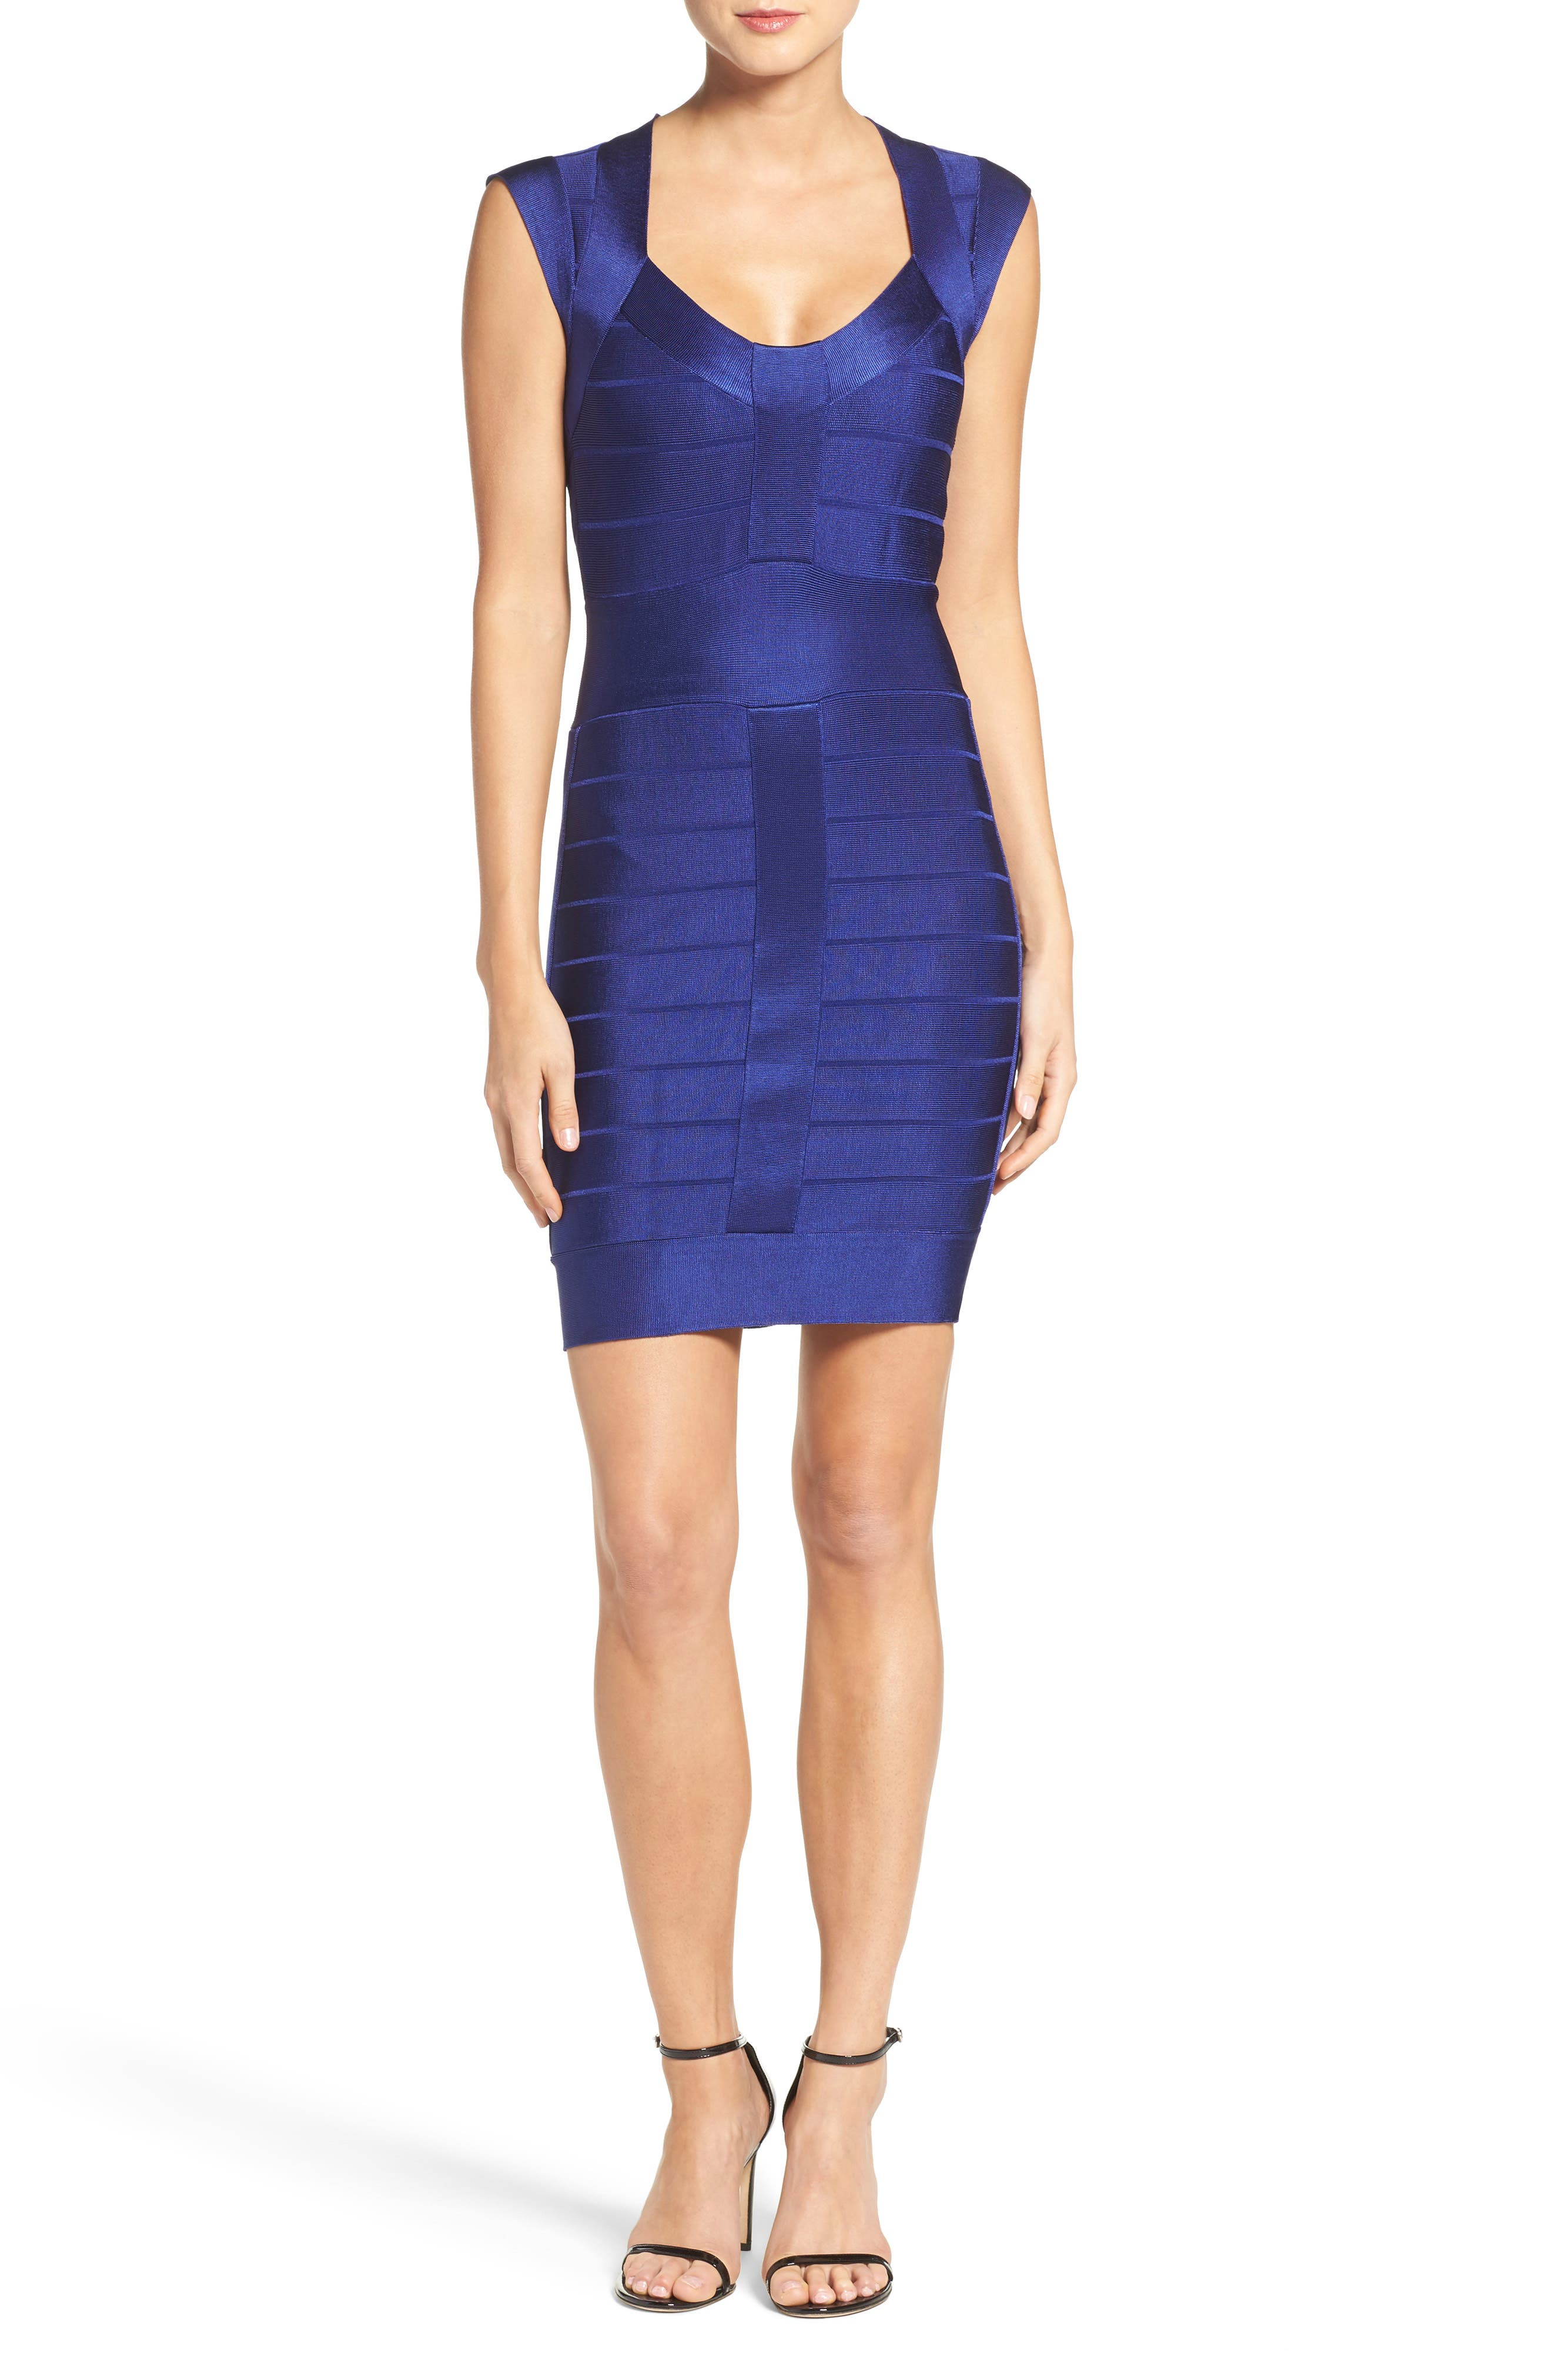 Spotlight Bandage Dress,                             Alternate thumbnail 5, color,                             431